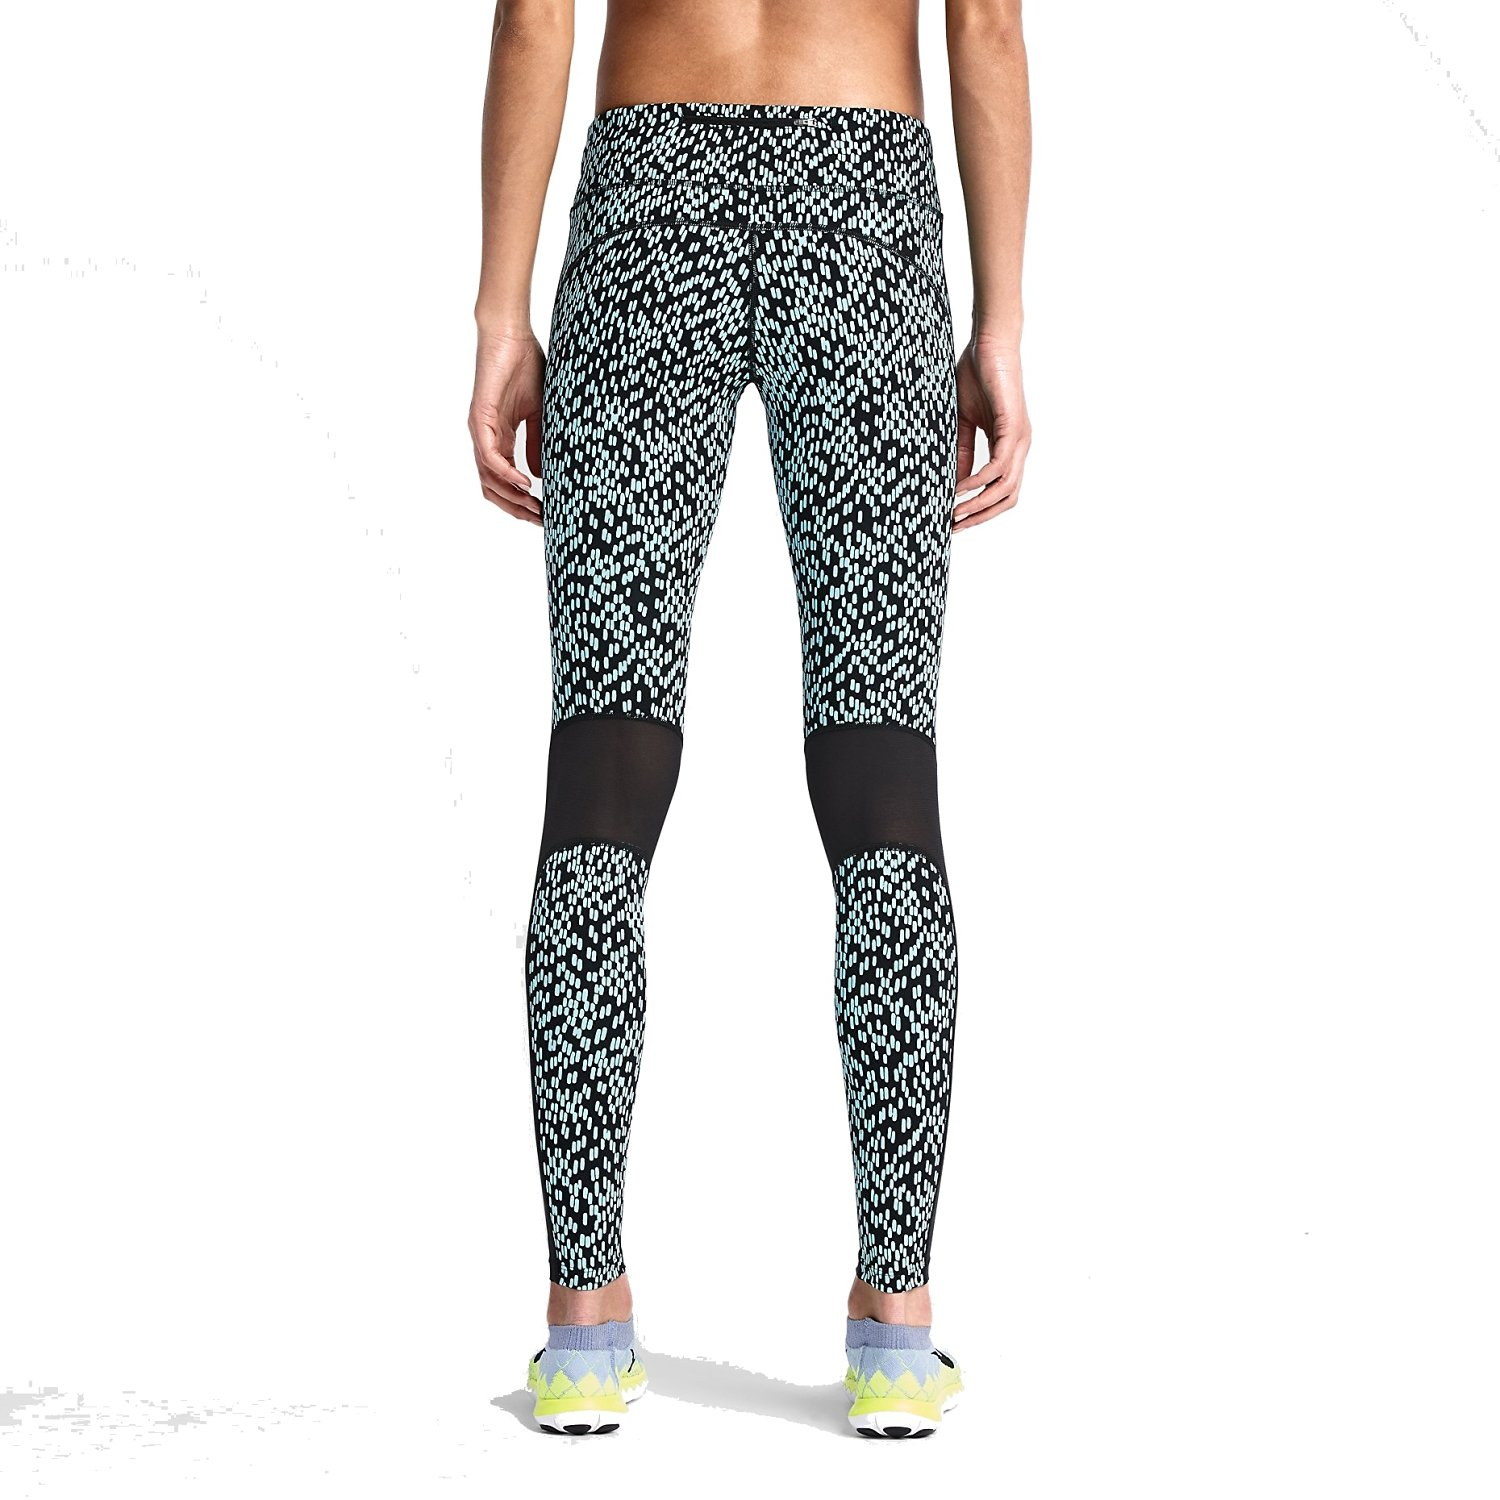 Buy Nike Womens Dri FIT Epic Lux Printed Running Tights in